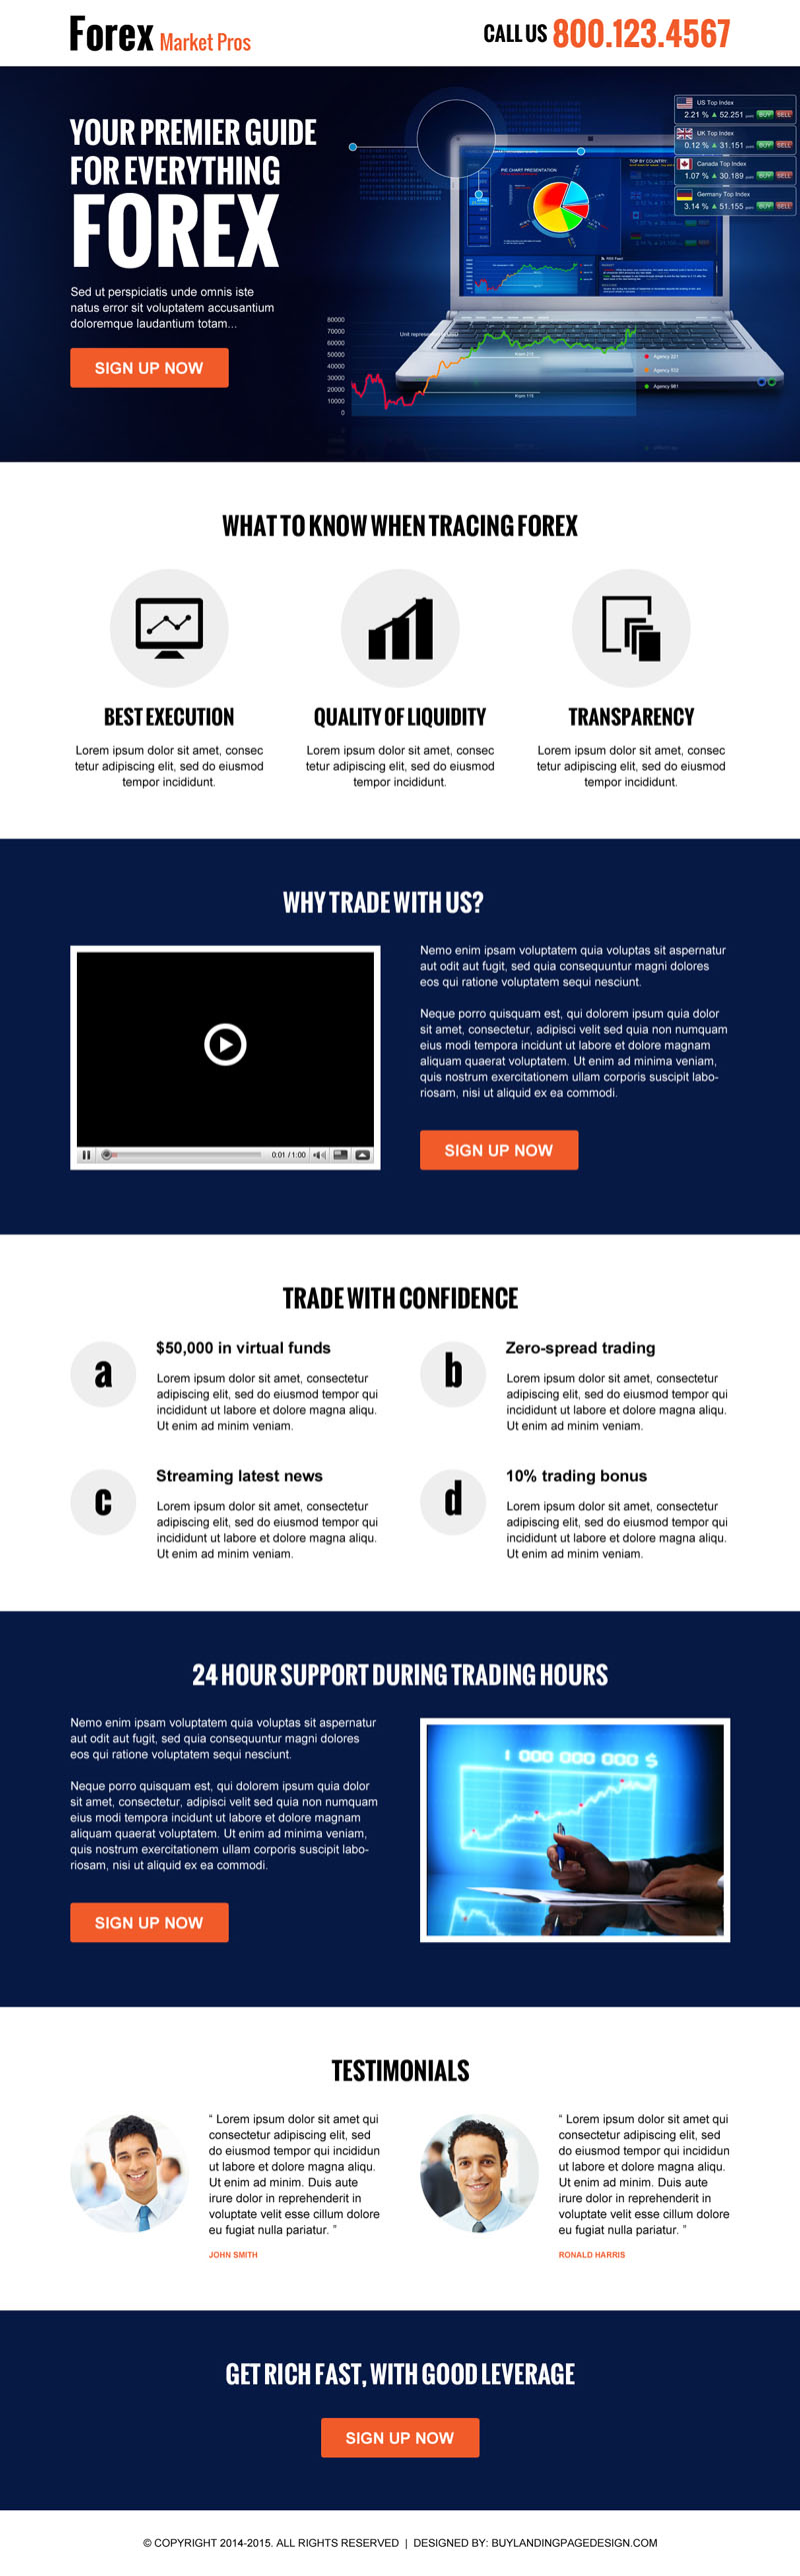 forex-marketing-guide-call-to-action-landing-page-design-template-004